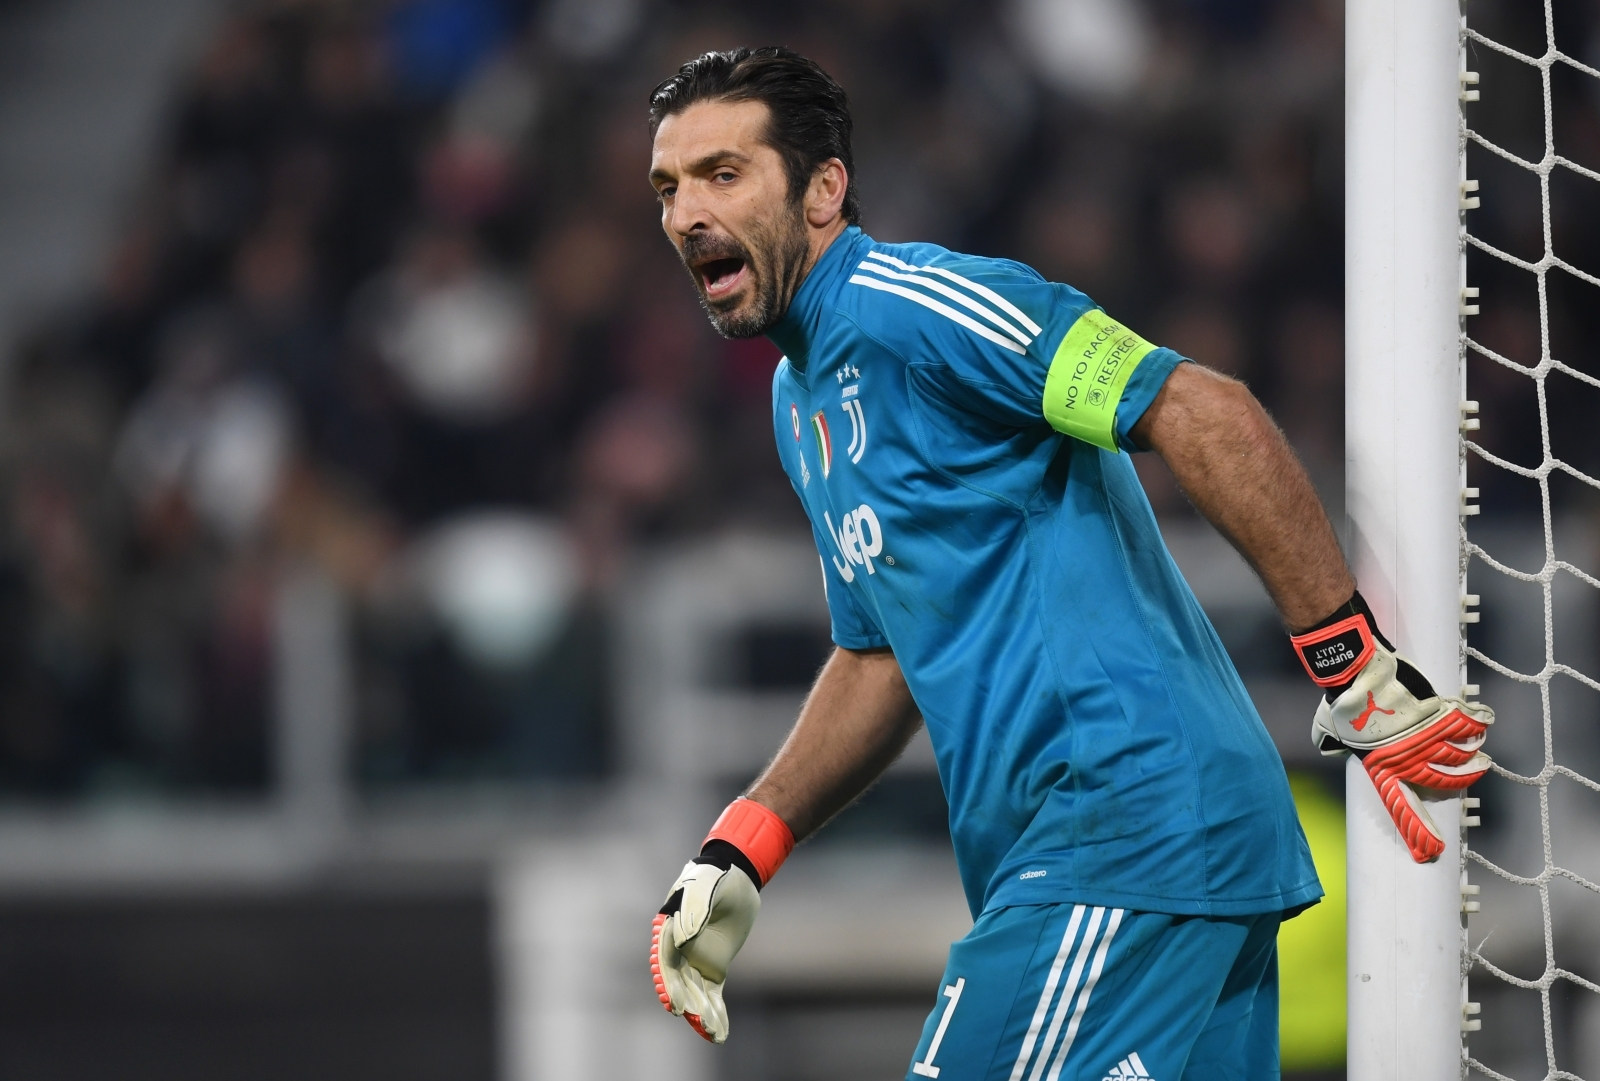 Gianluigi Buffon raves about reported Liverpool target Alisson